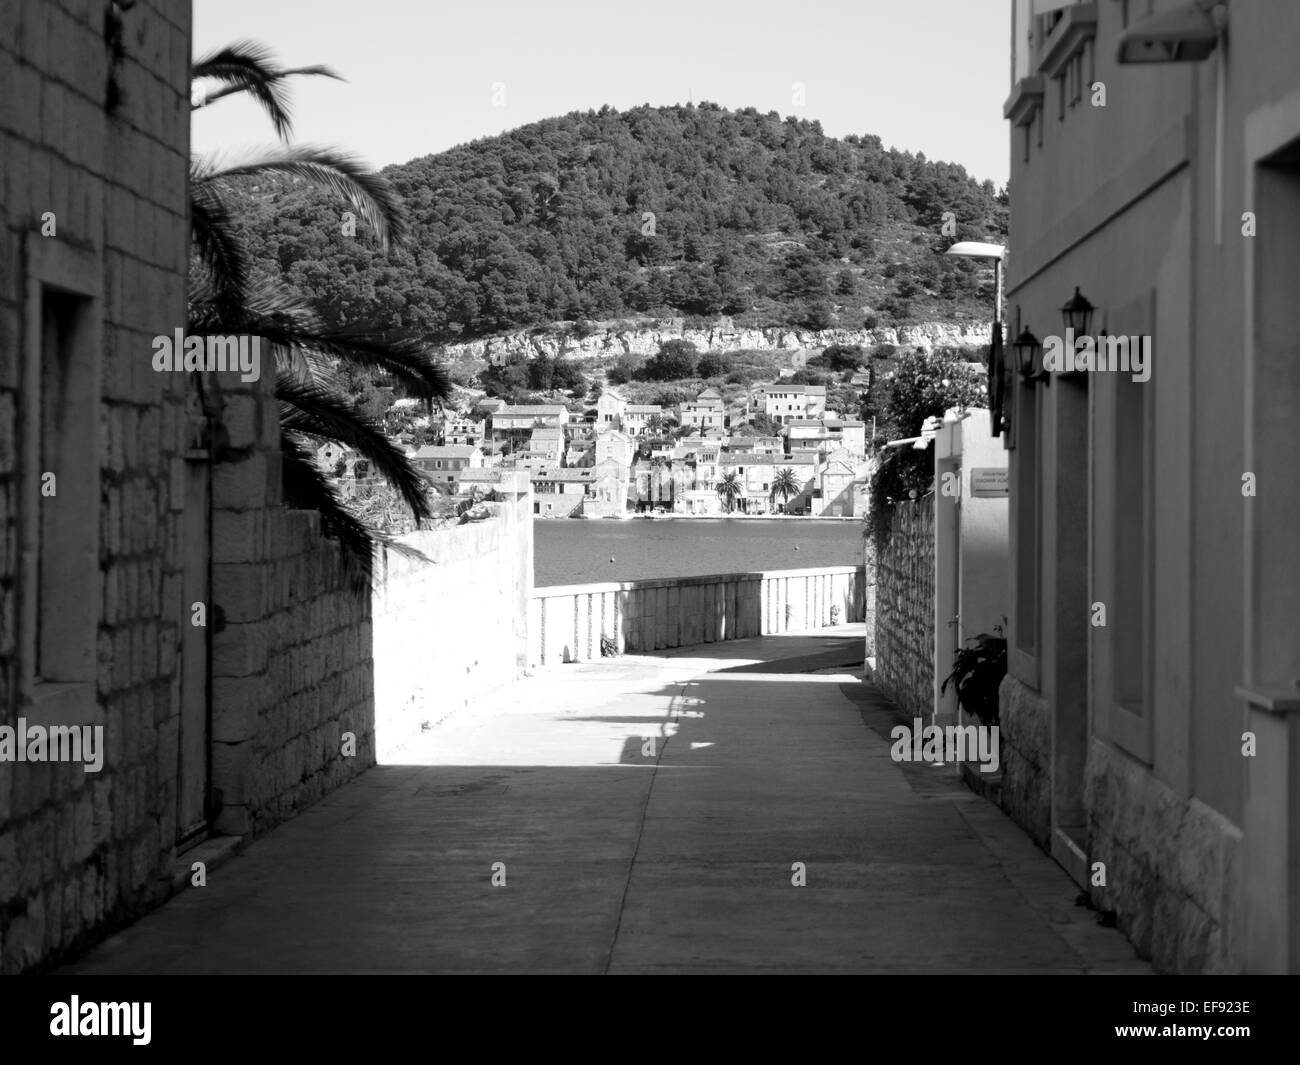 Empty street on island Vis with stone buildings in black and white - Stock Image